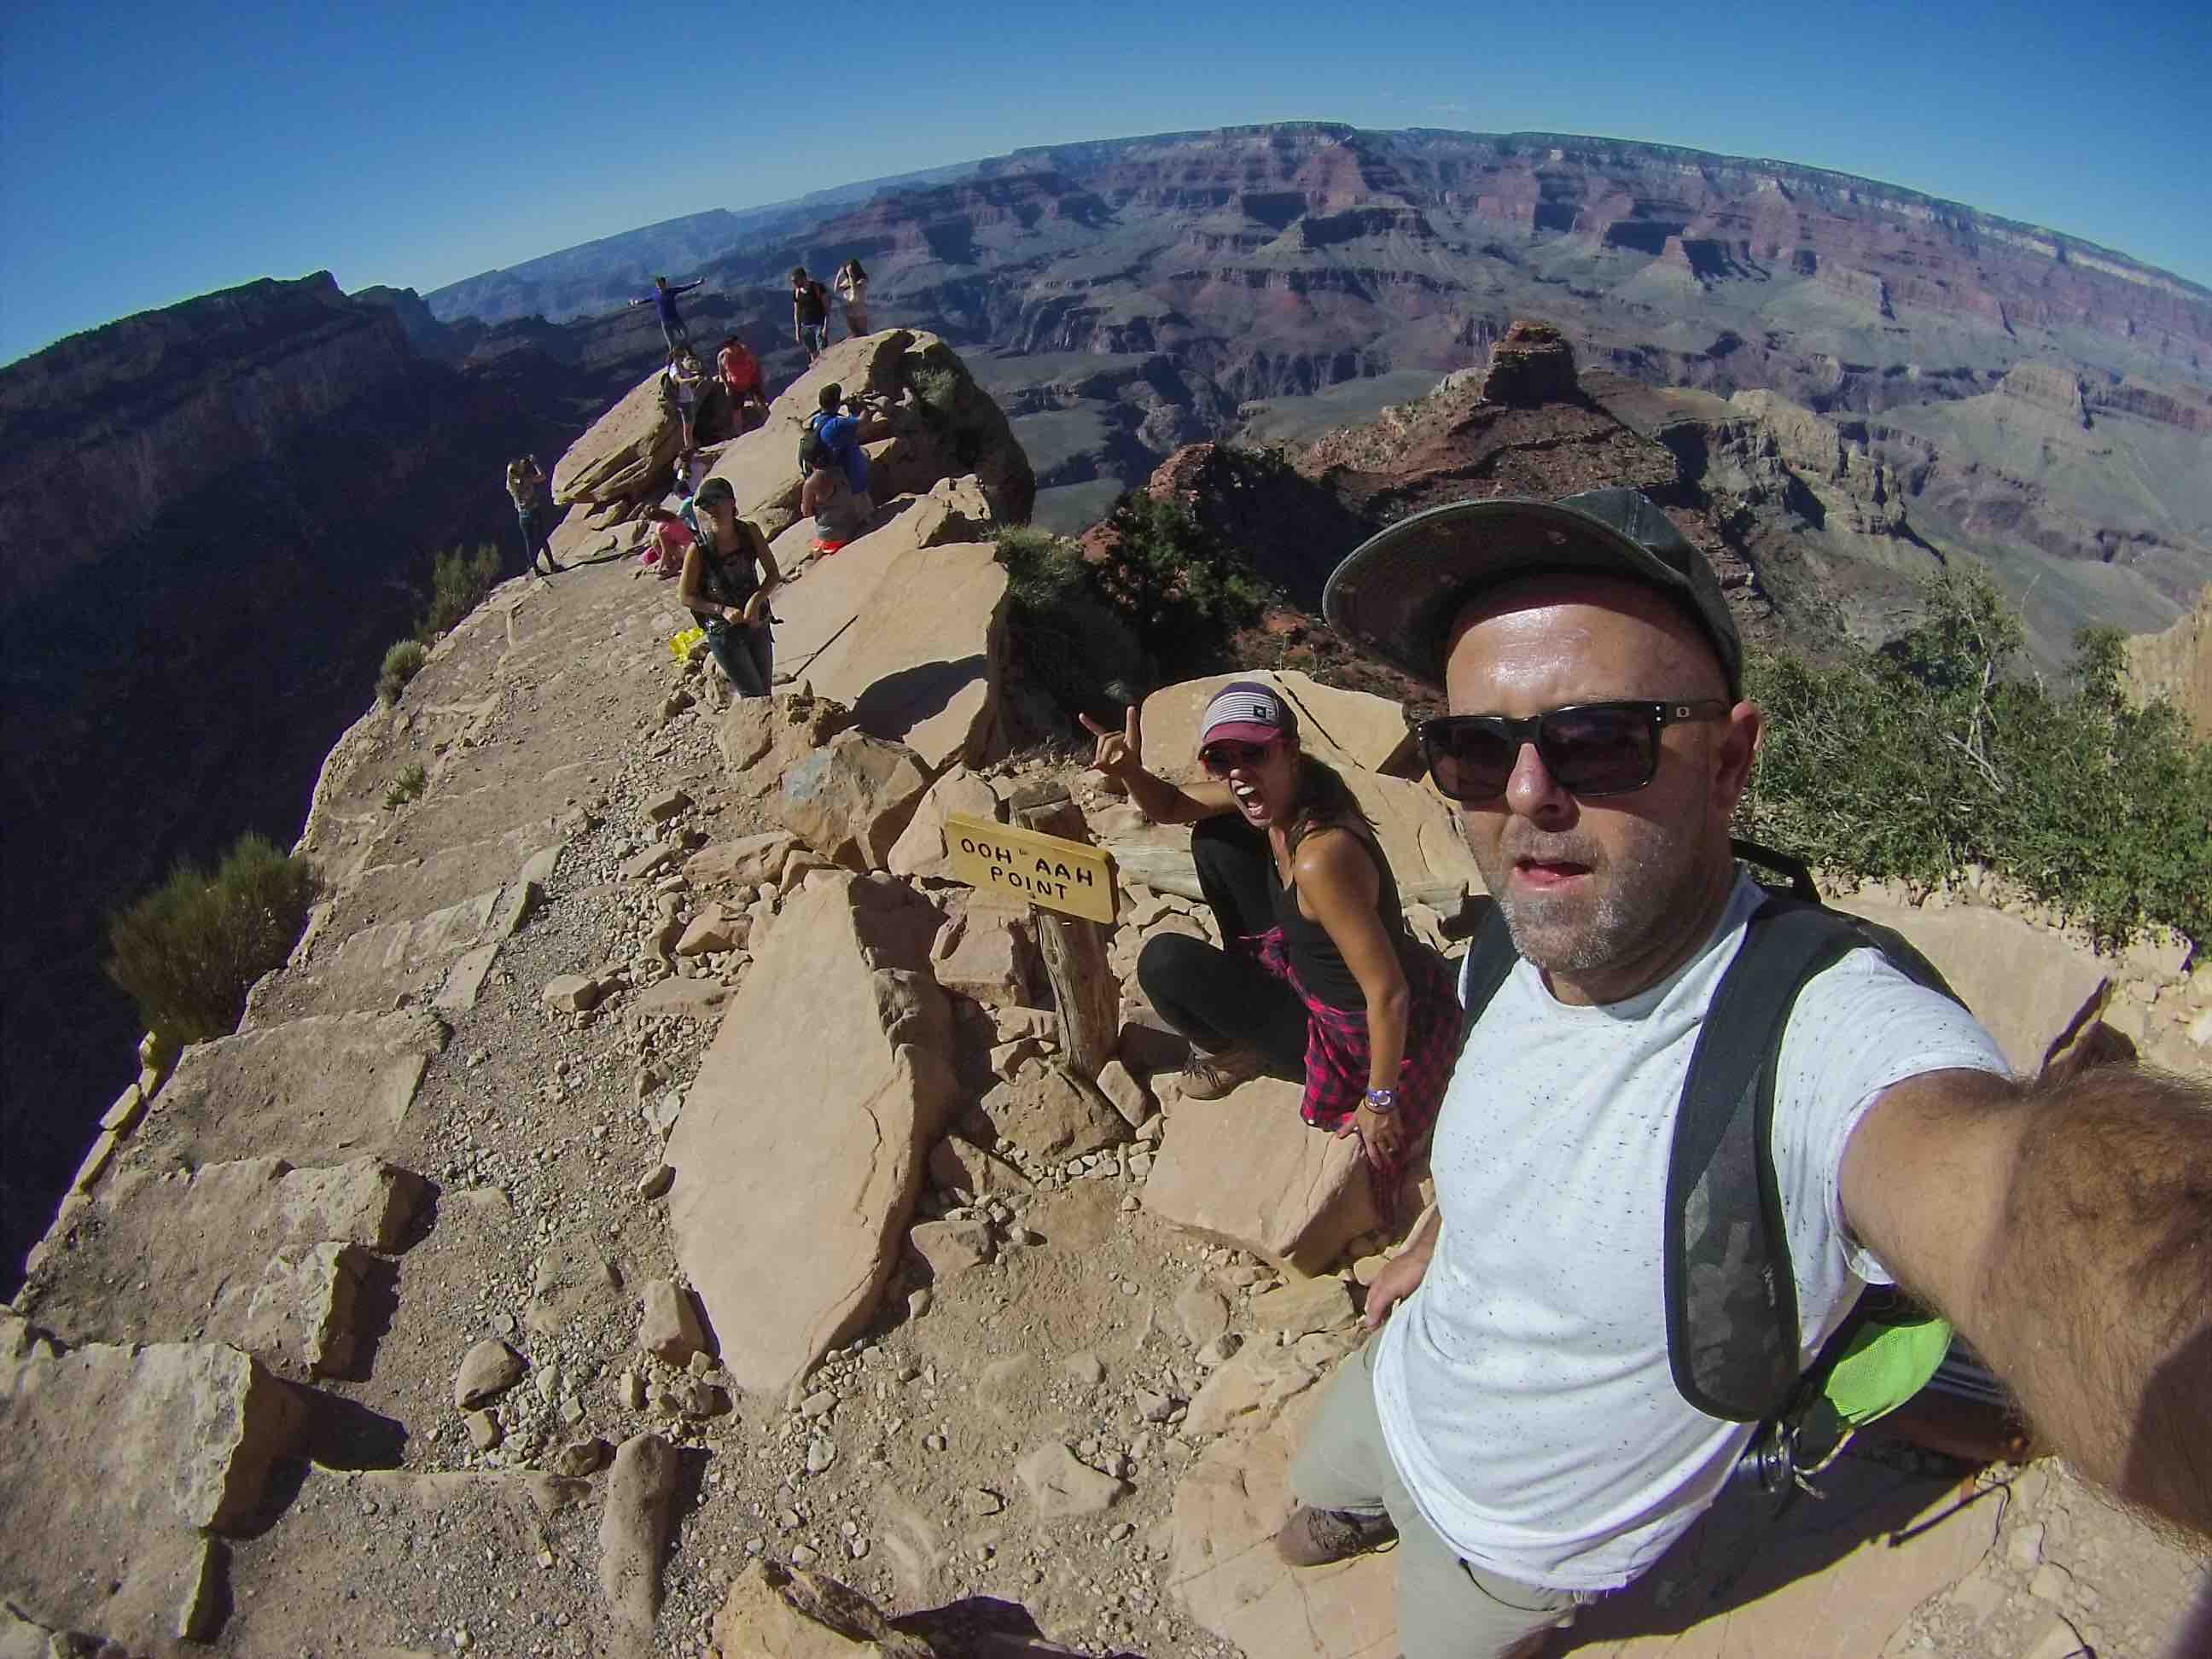 Woo Aah Point Hike Arizona USA Grand Canyon